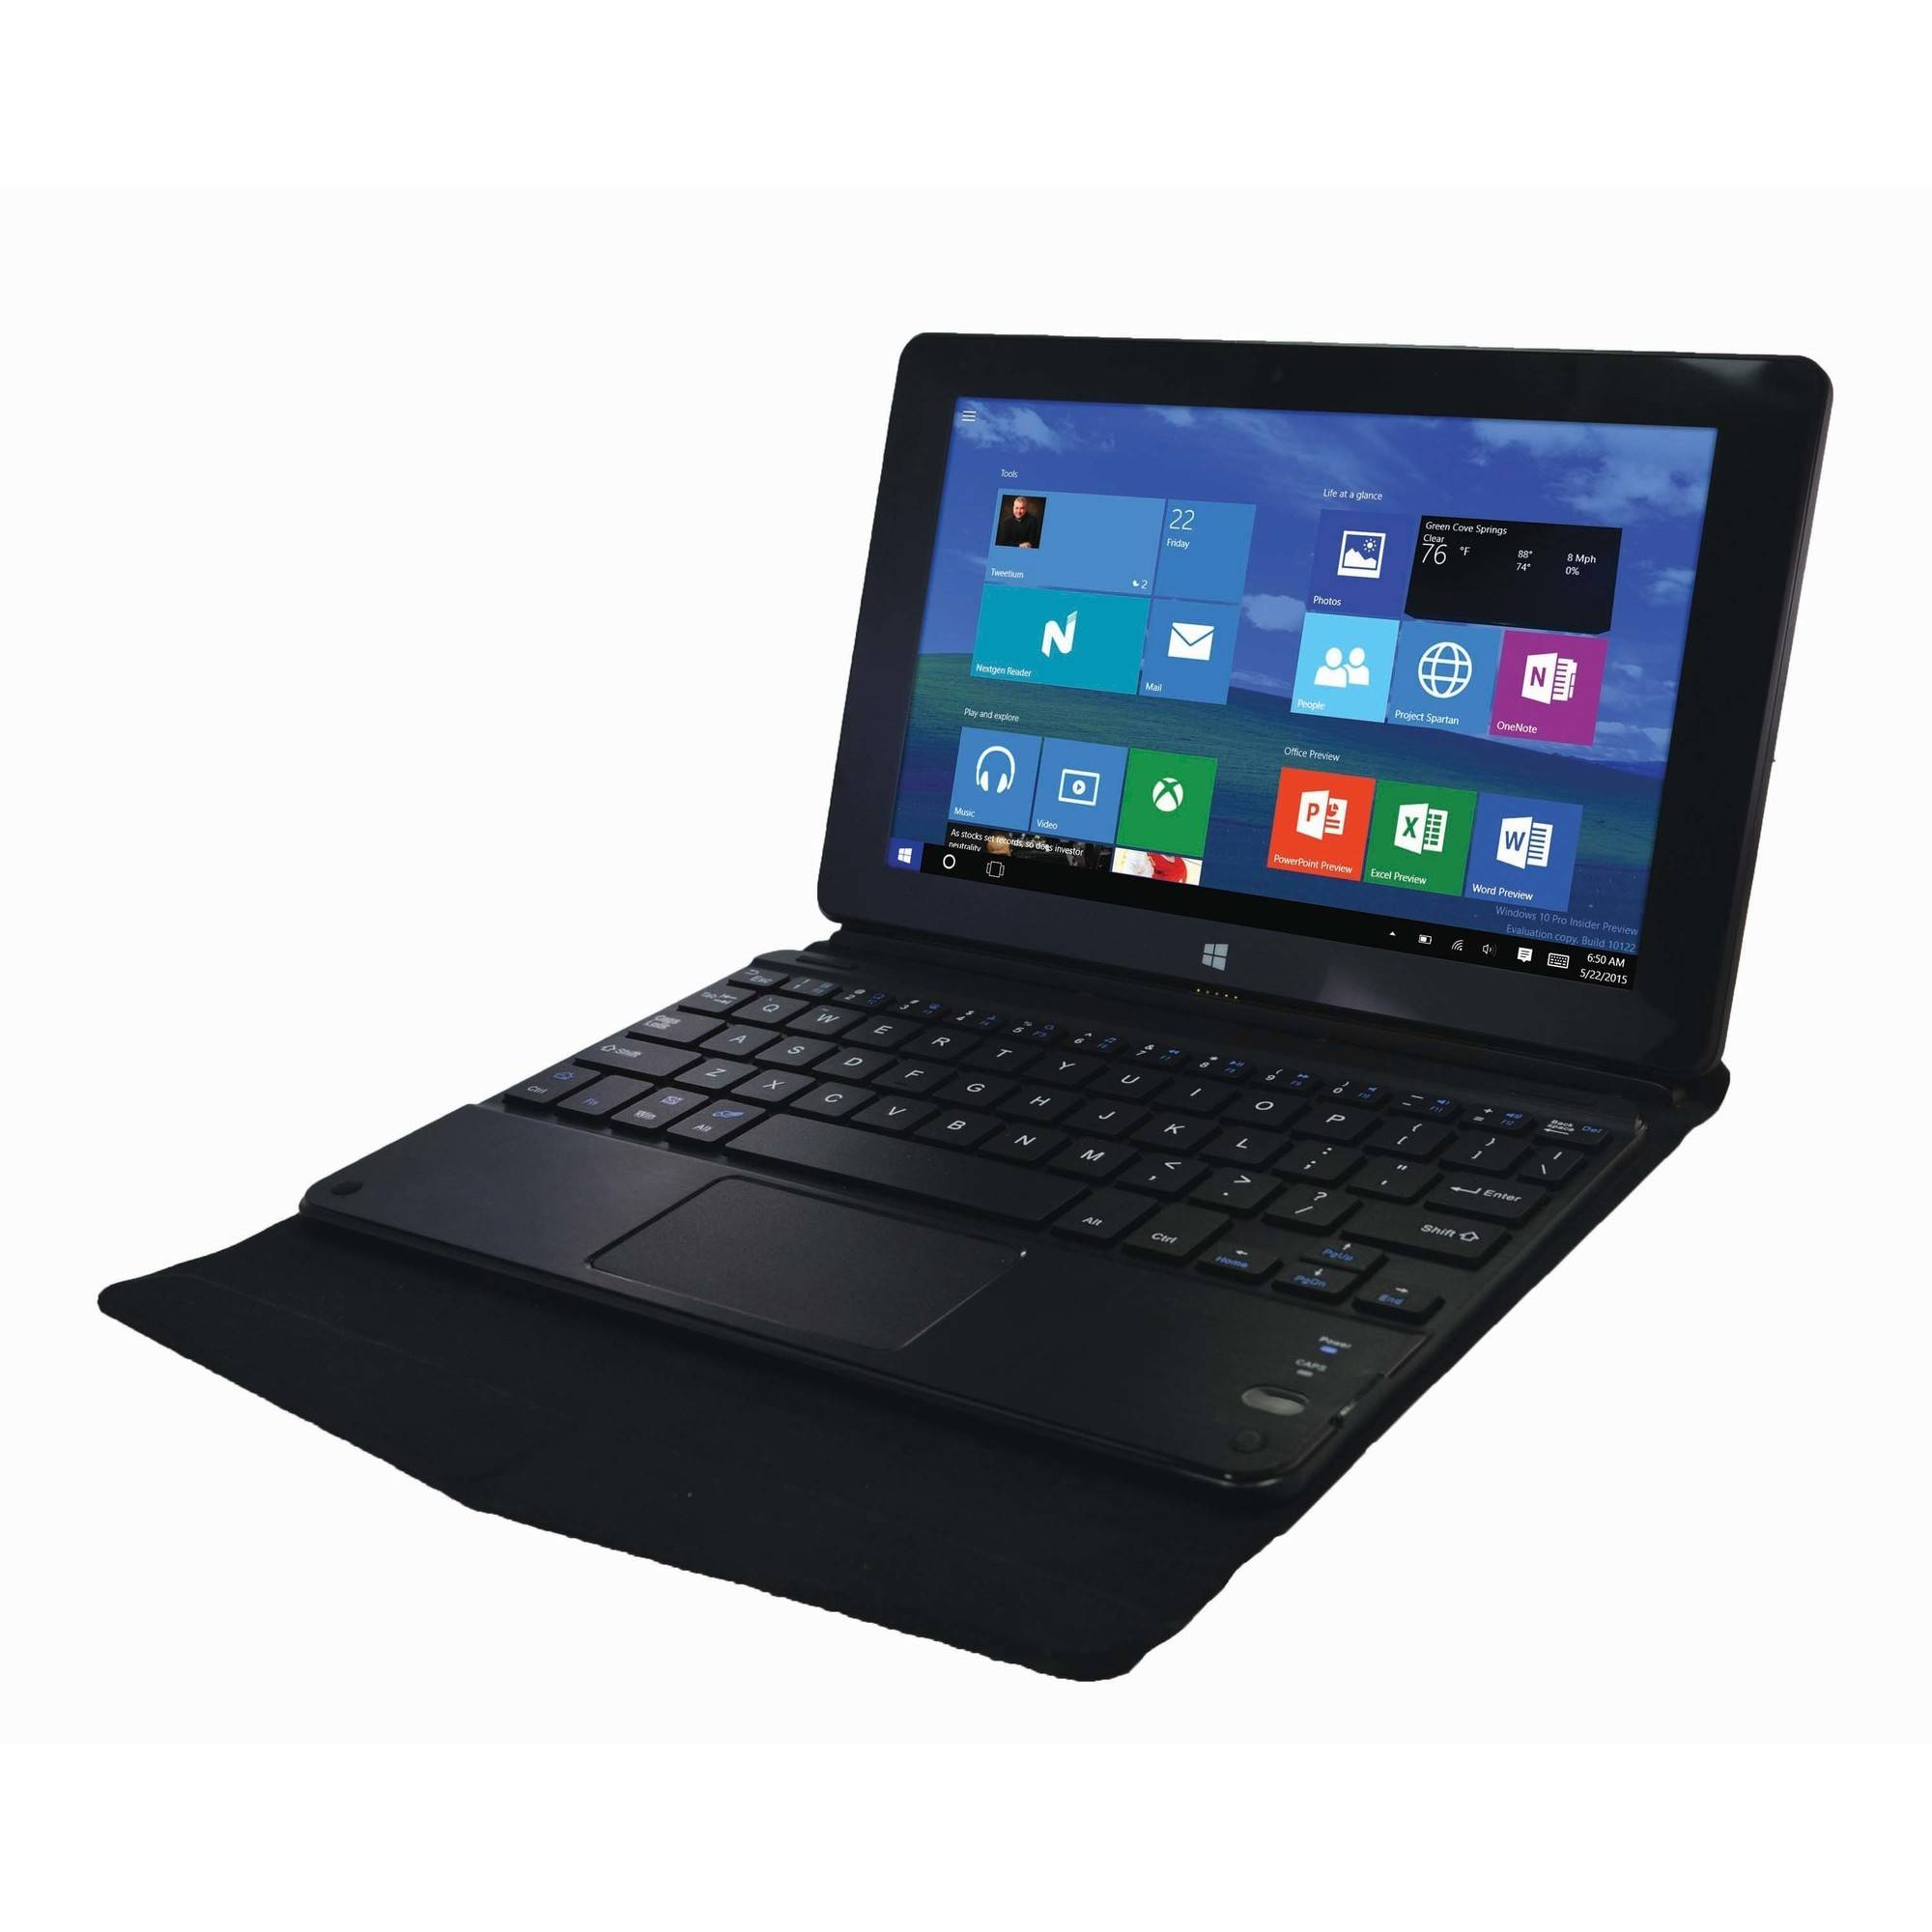 """Proscan PLT8990-K with WiFi 8.95"""" Touchscreen Tablet PC Featuring Windows 10 Operating System, Black"""